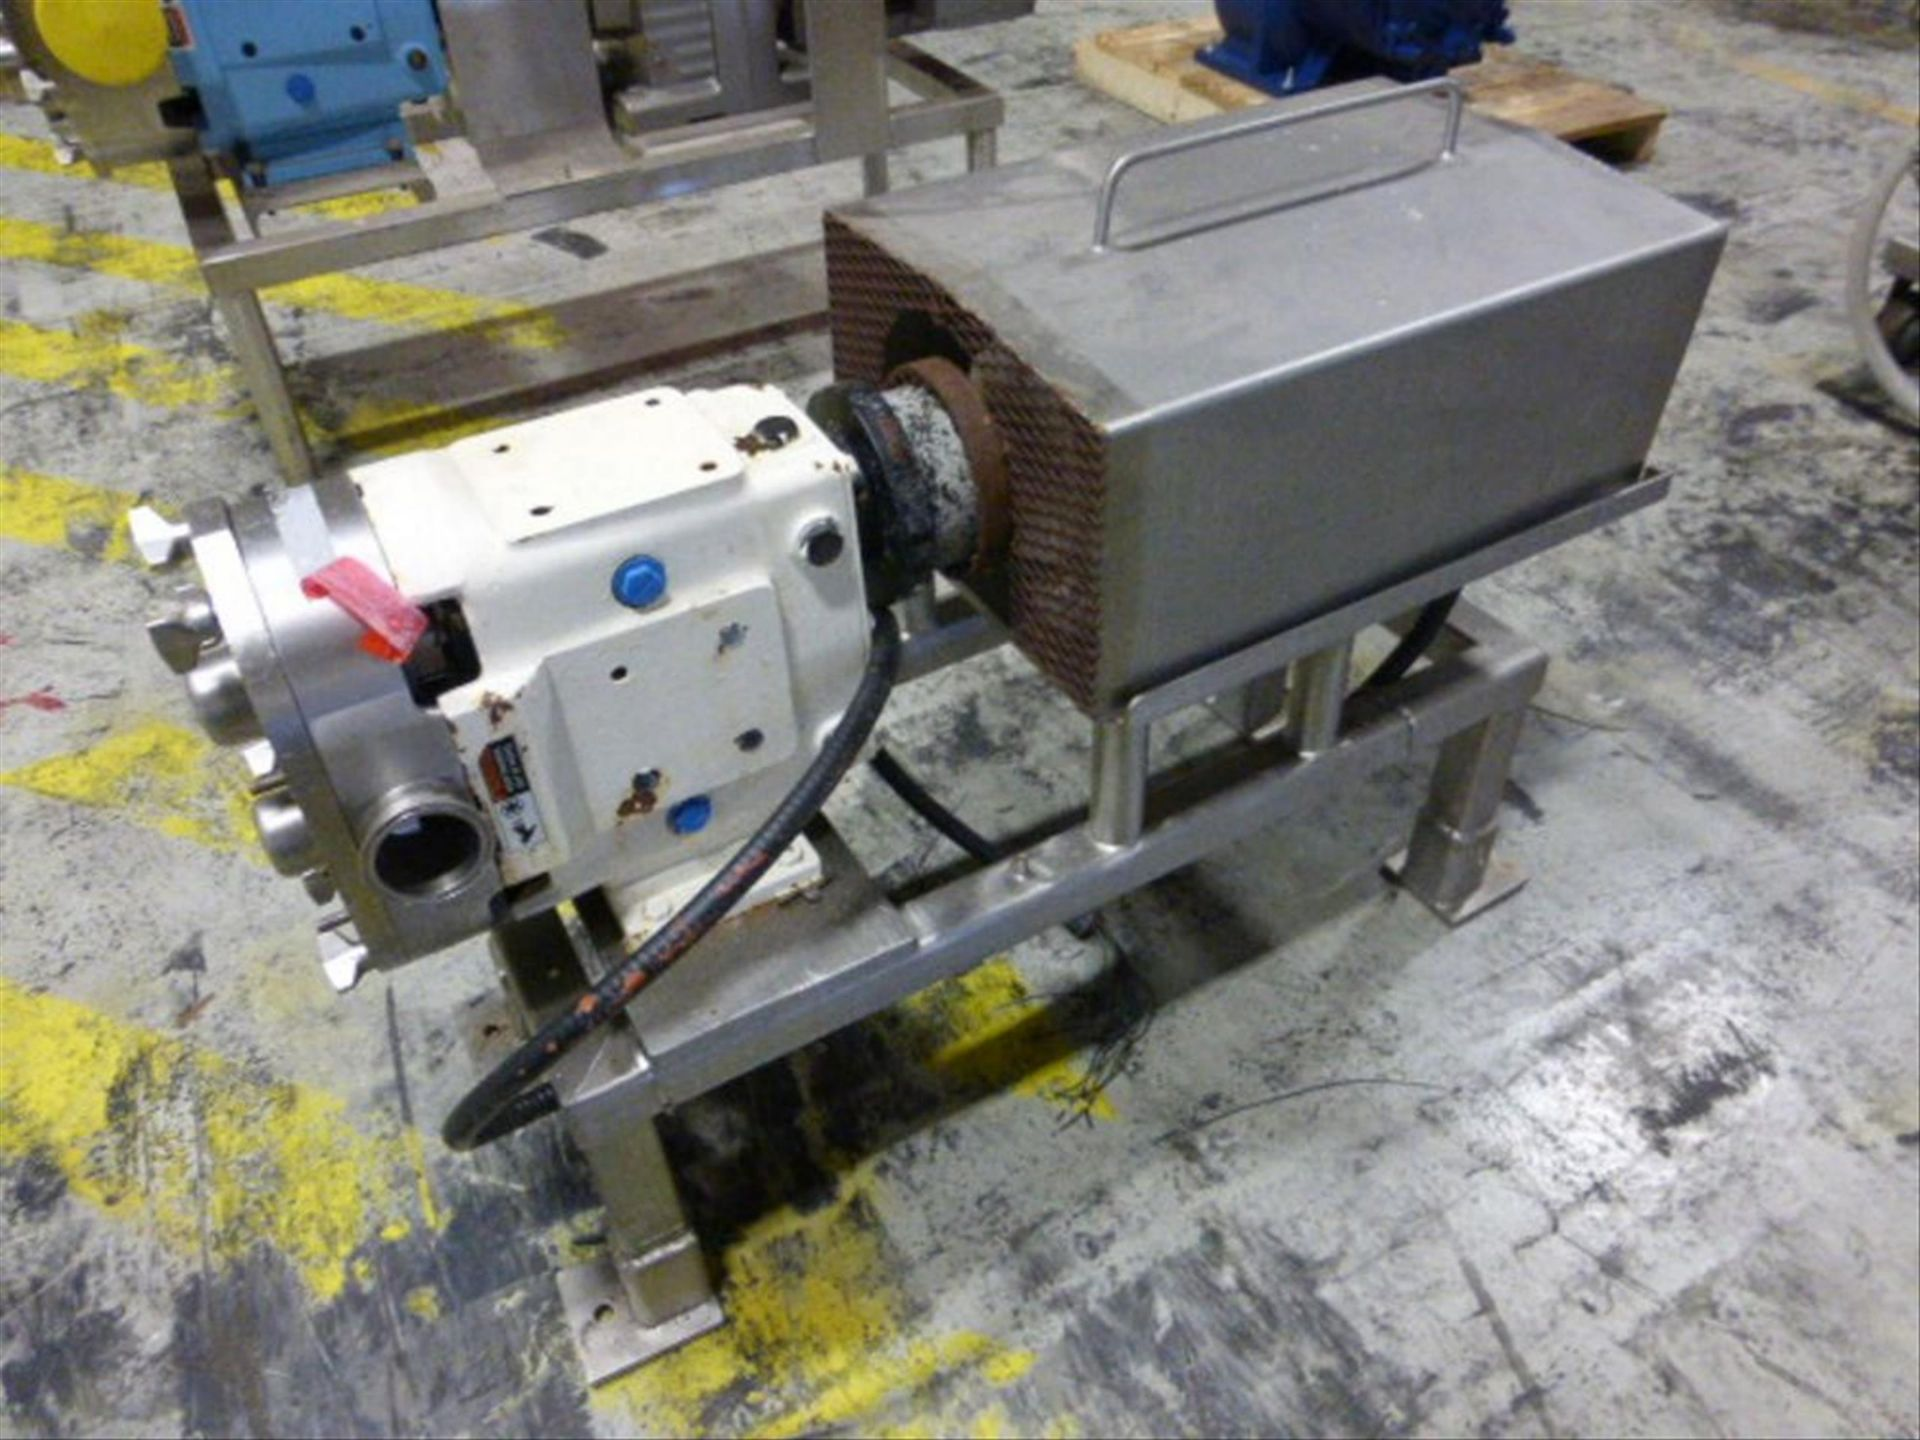 Lot 117 - SPX 2.5 in stainless positive displacement pump, model 060 UI, ser. no 415645-13, with 5 hp motor,